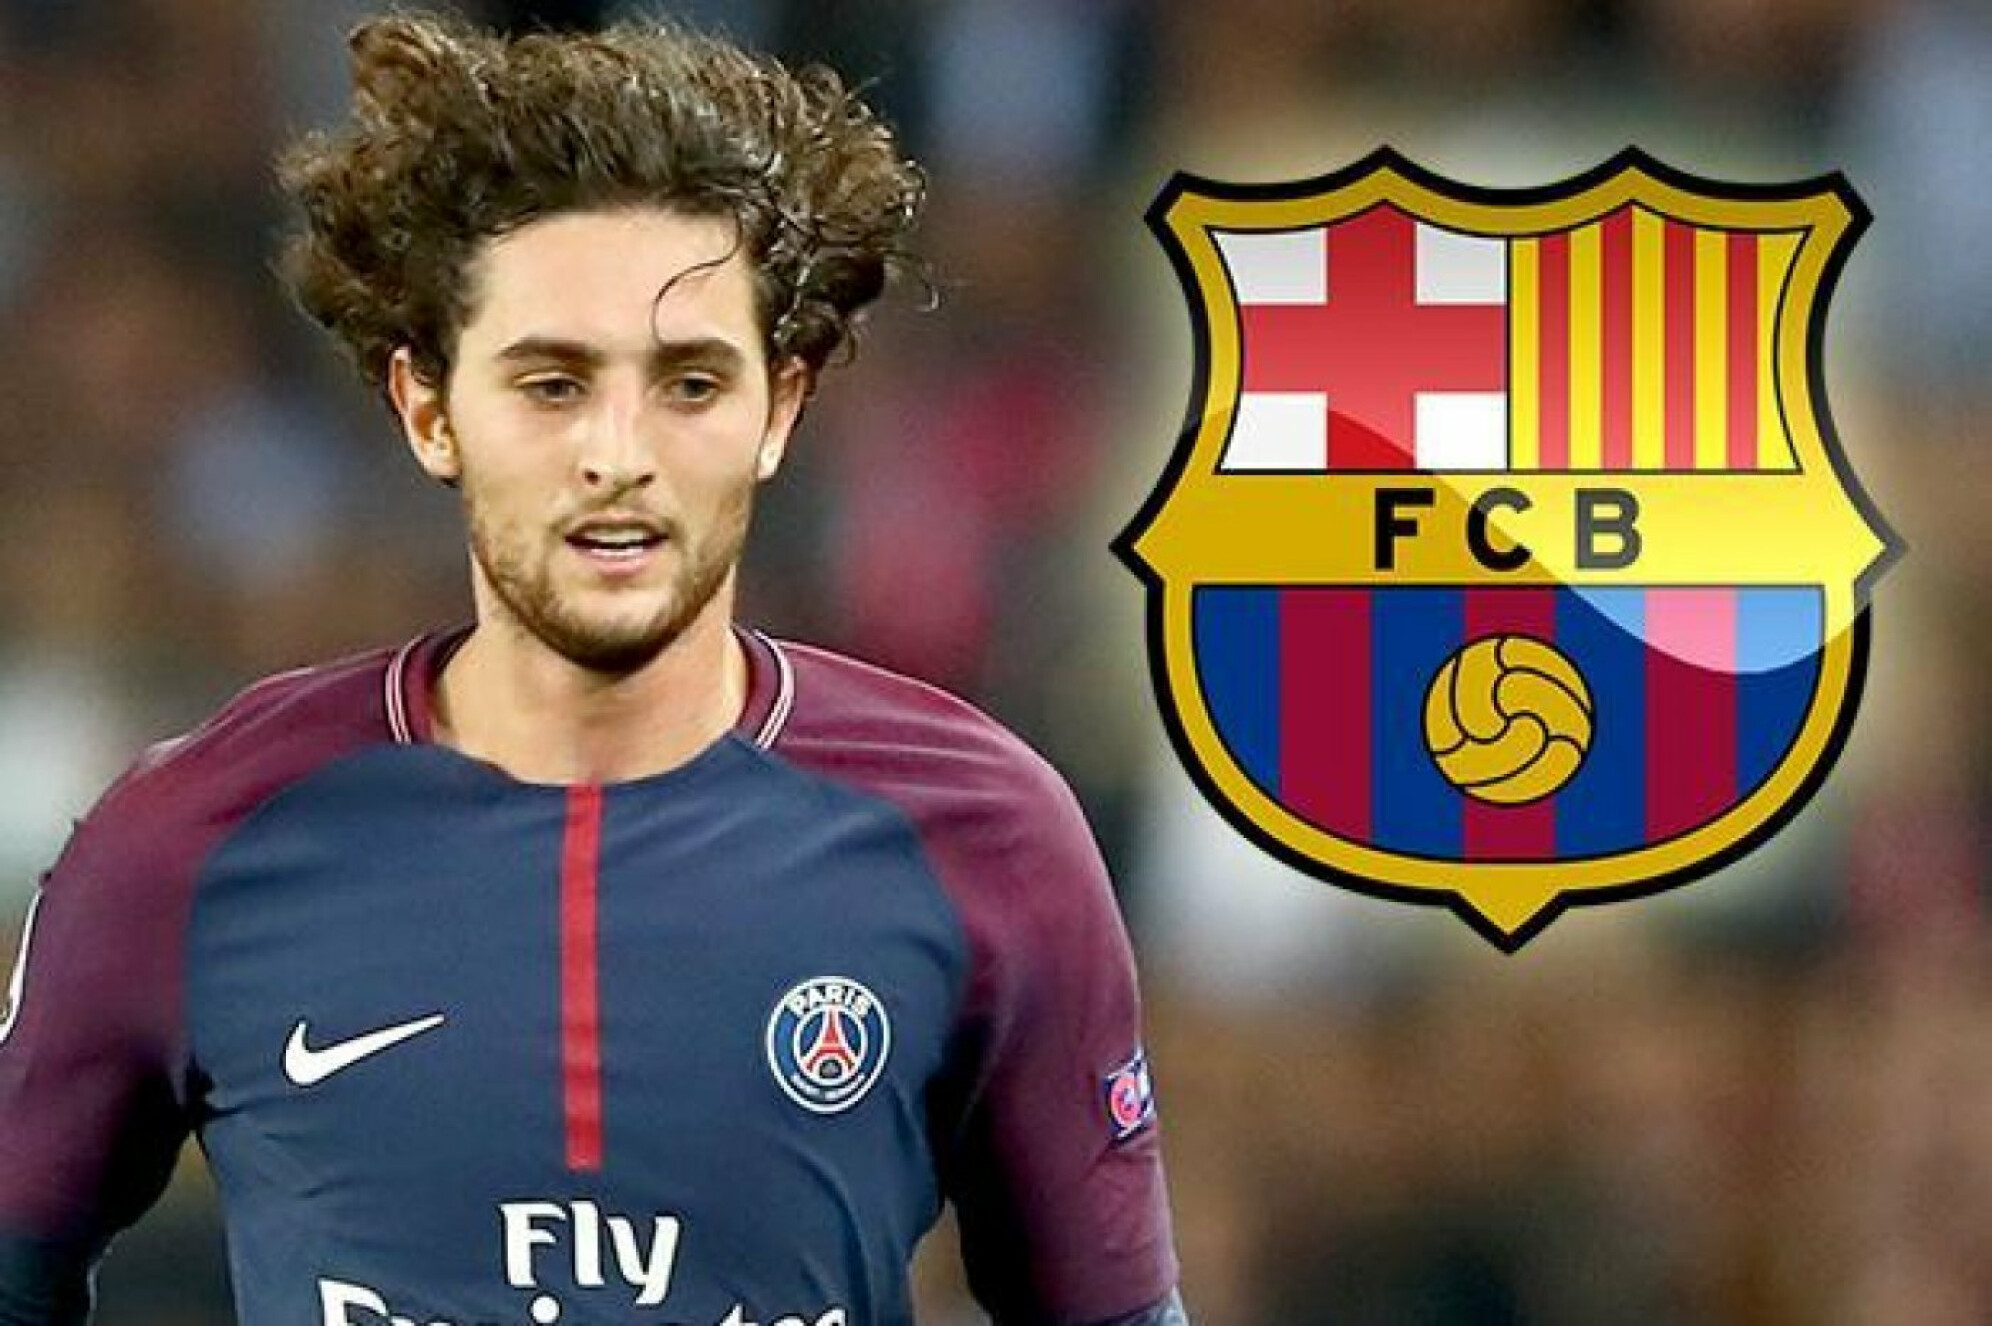 FC Barcelona forced to make a statement regarding Adrien Rabiot